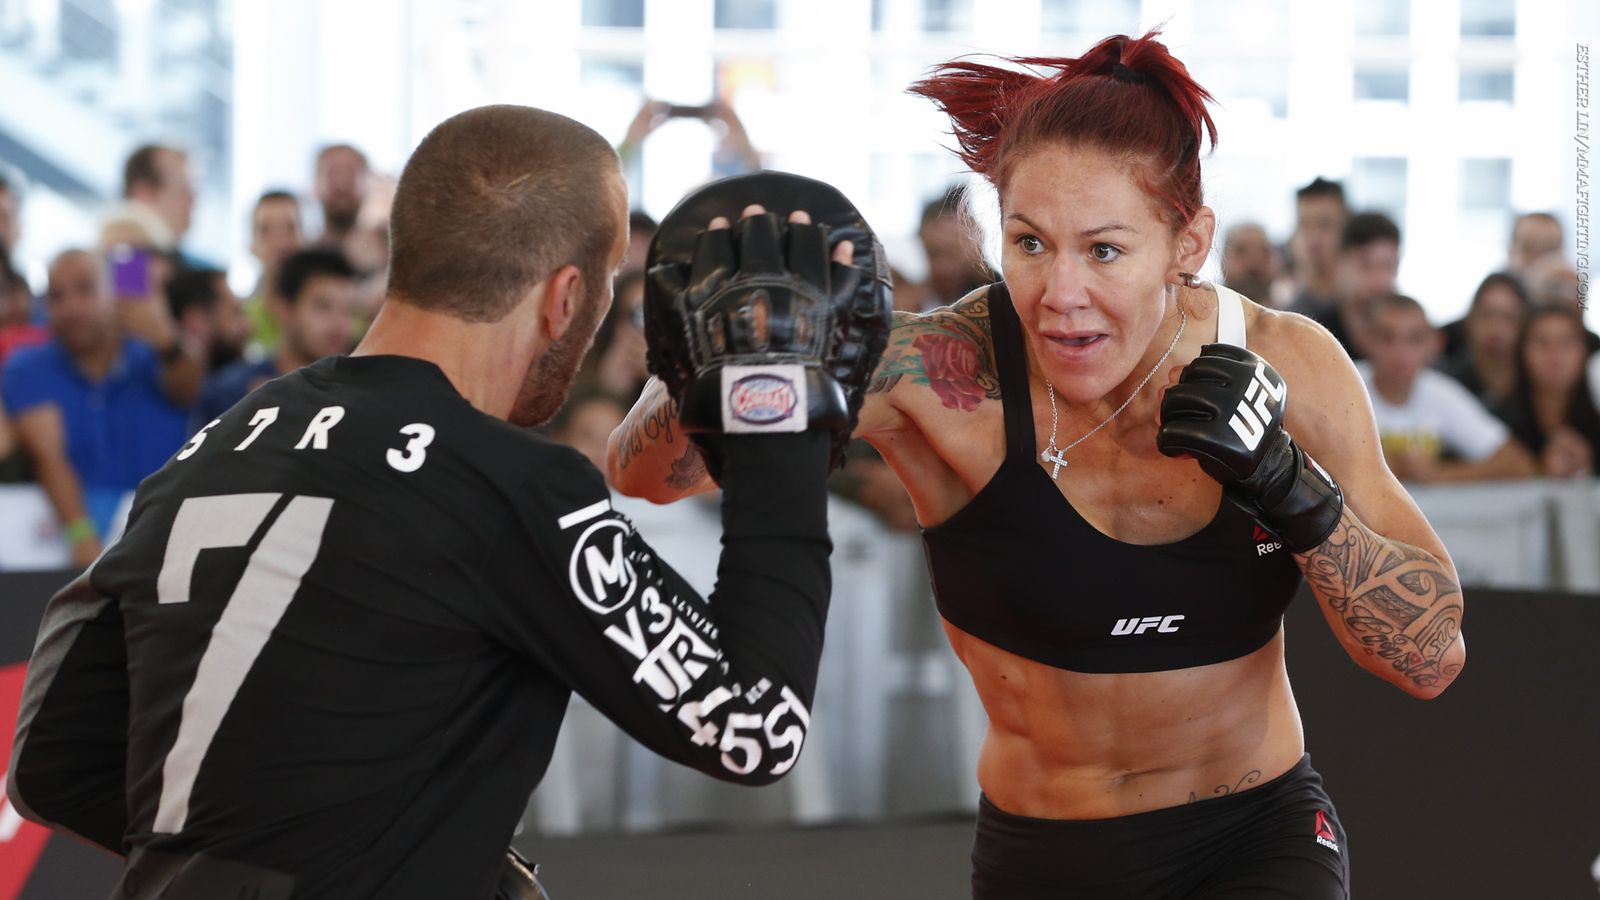 UFC: Cris Cyborg fumes at the UFC for not informing fighters before media about UFC 232 relocation - Cyborg